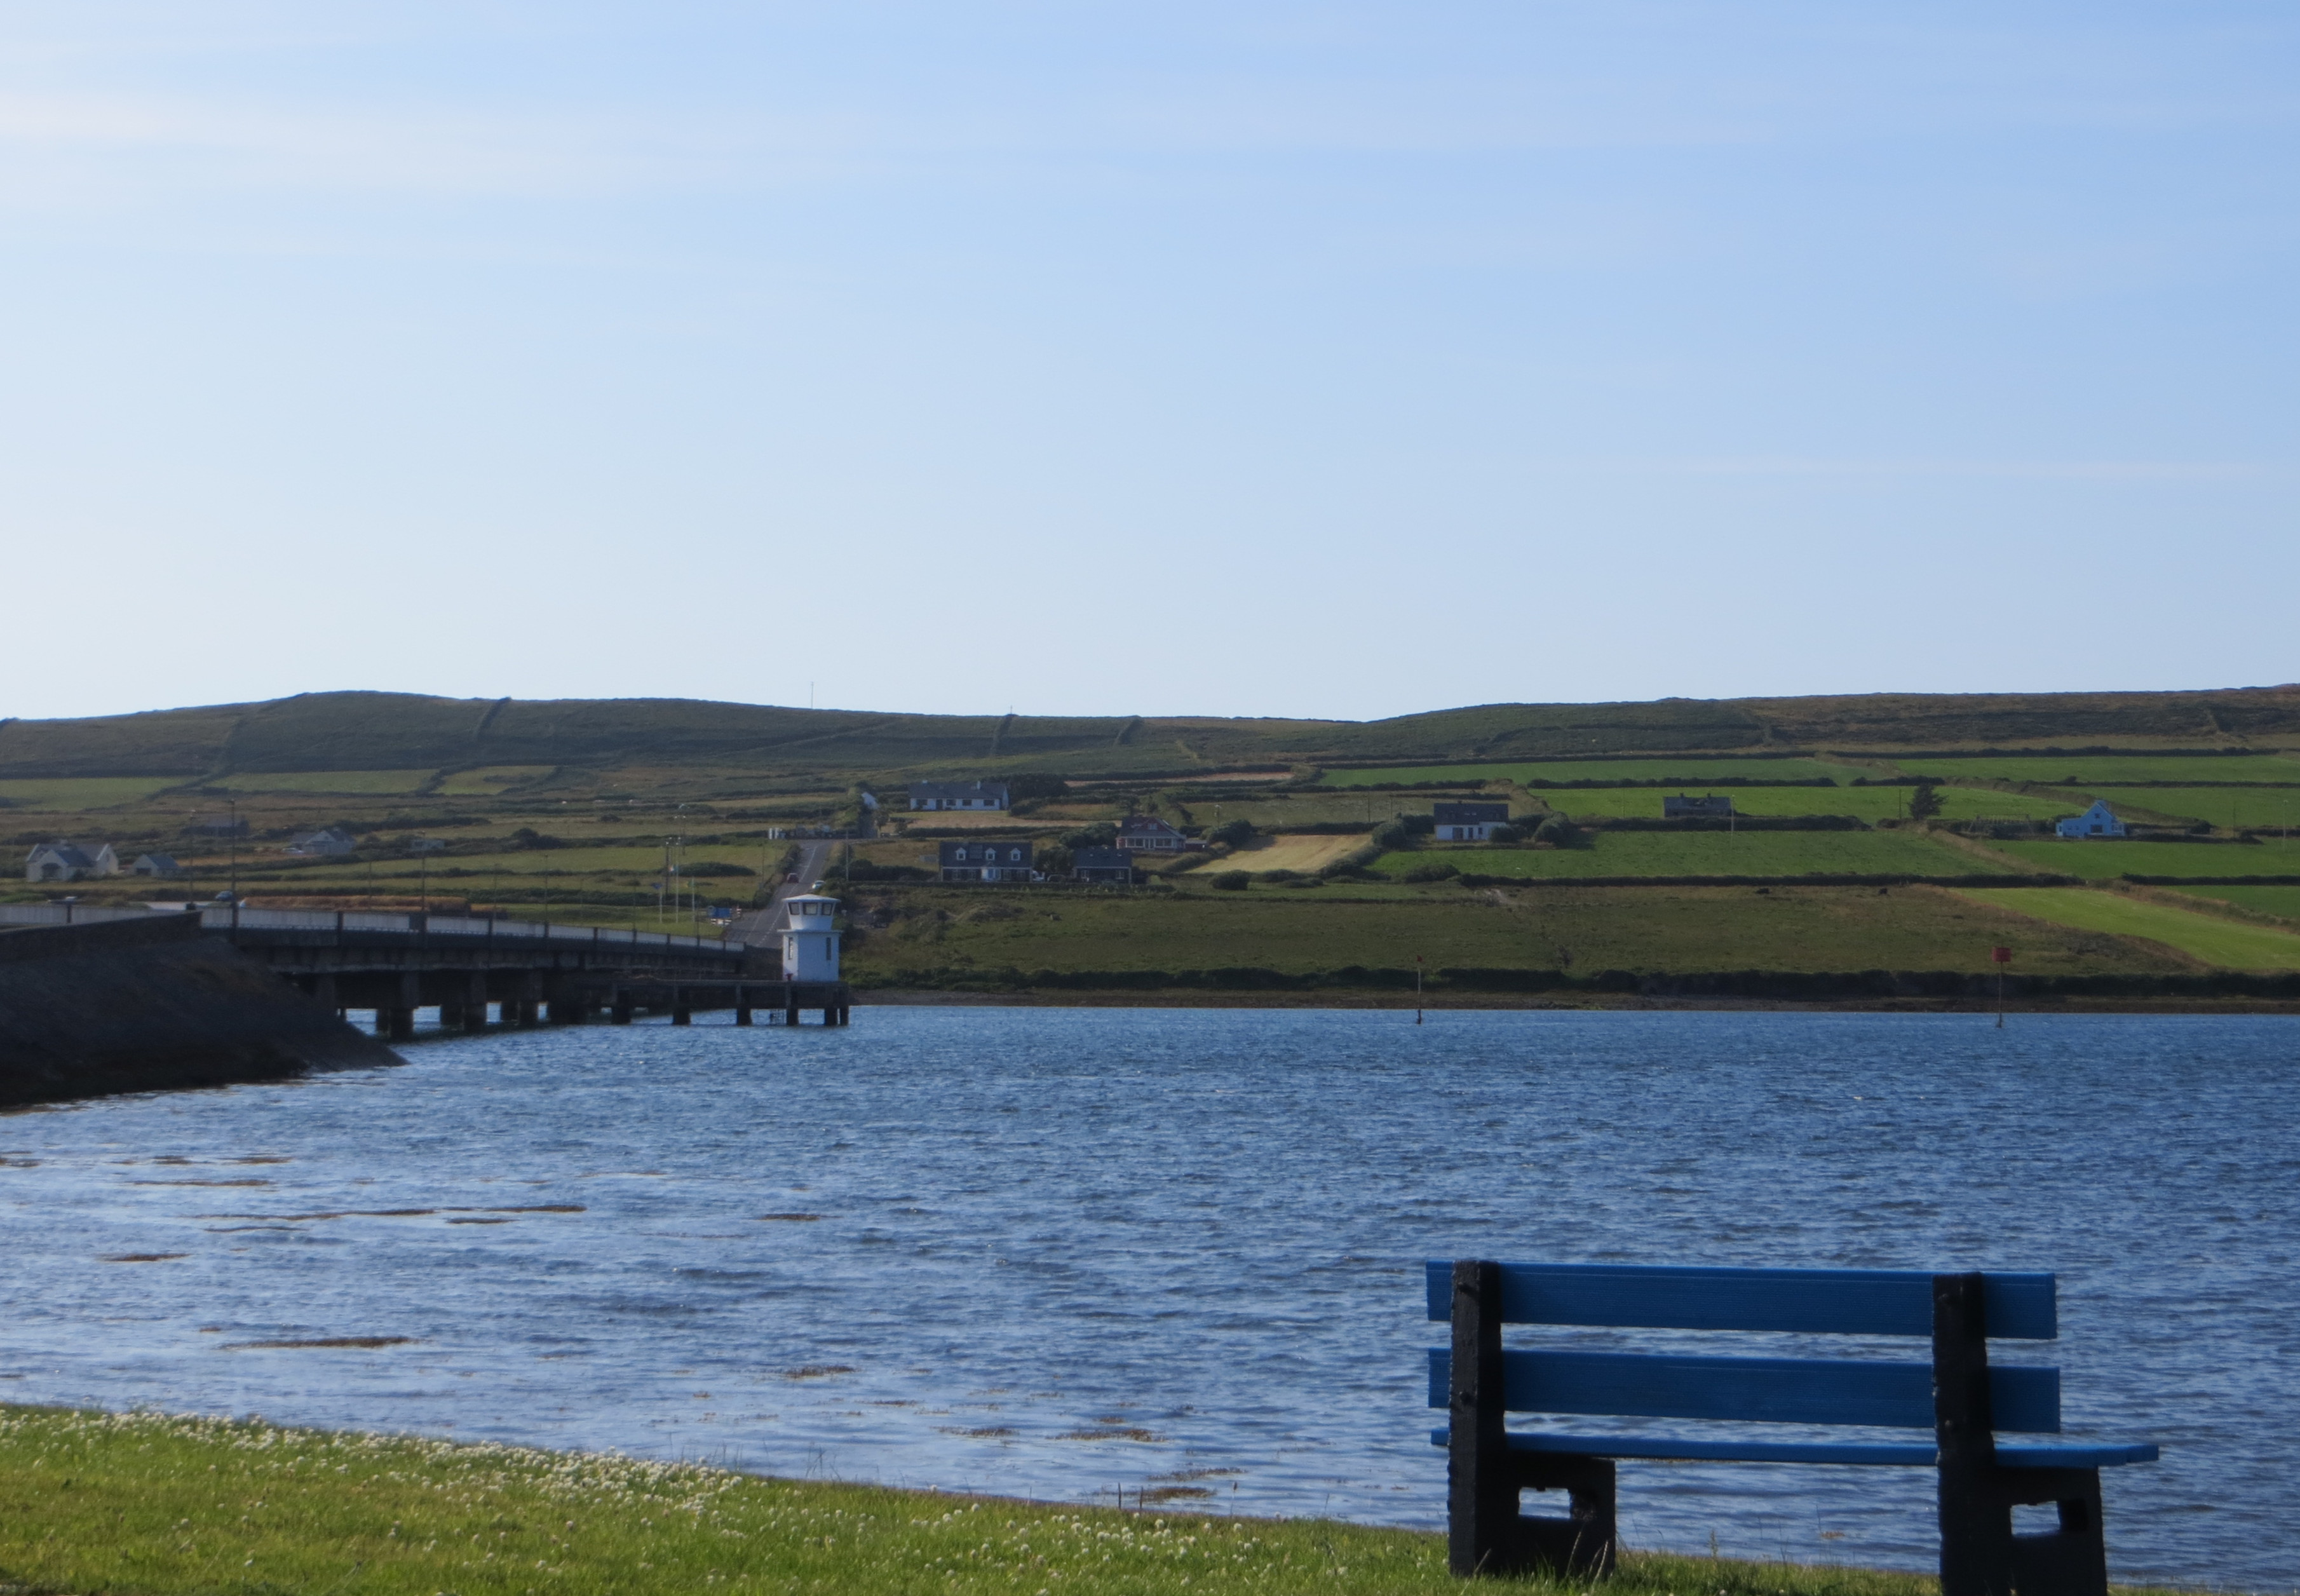 Image of Valentia Island from the Bridge near Port Magee